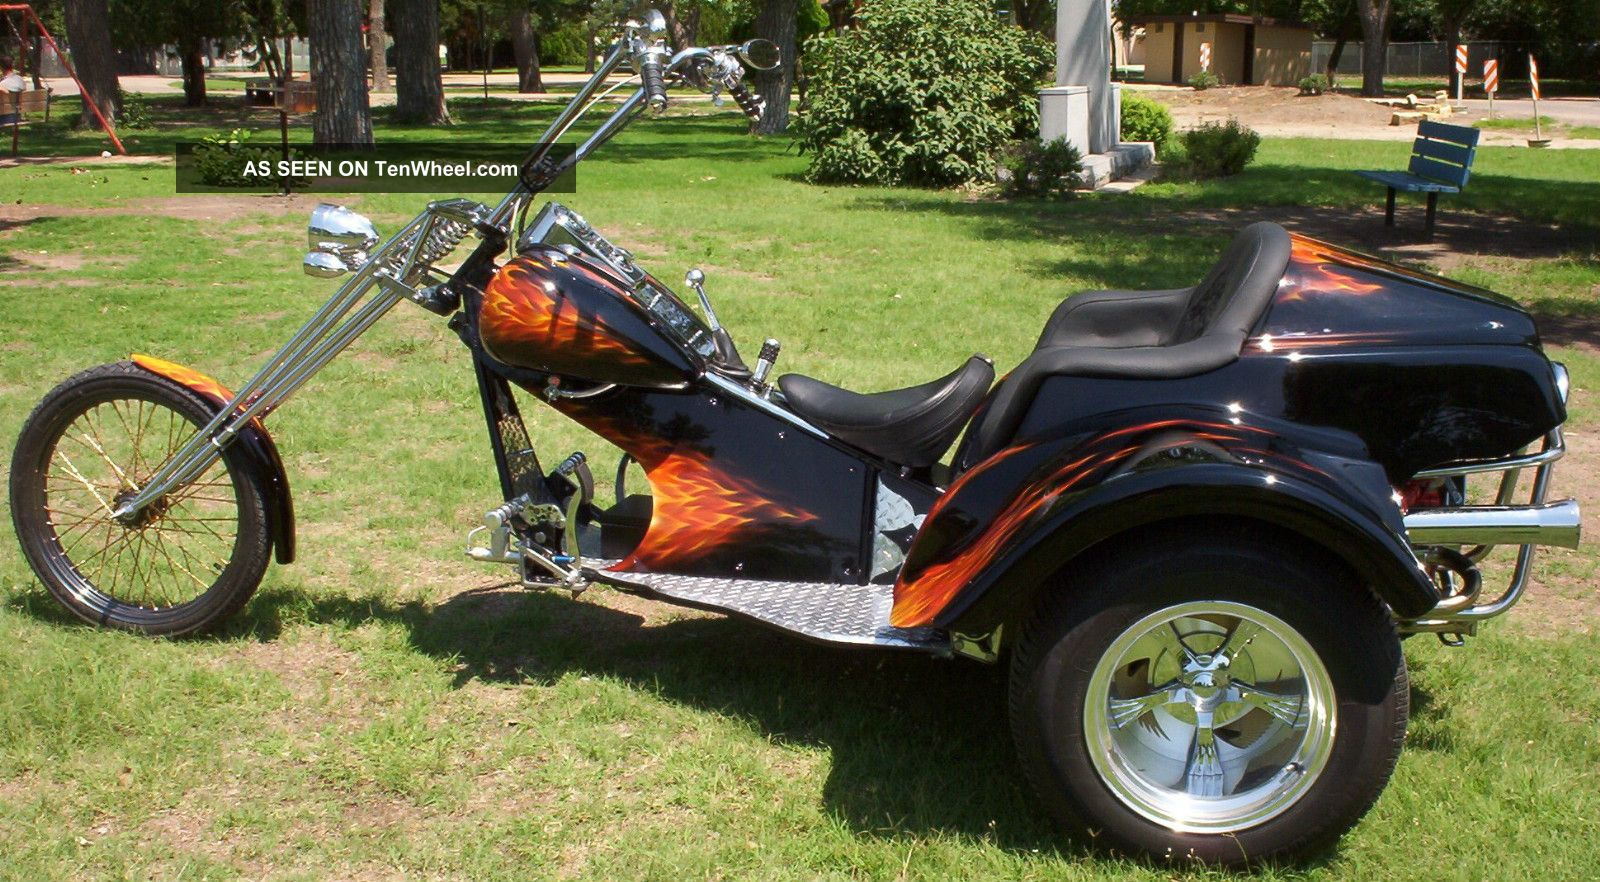 Harley Davidson Trike Motorcycles For Sale | All About Motorcycle ...